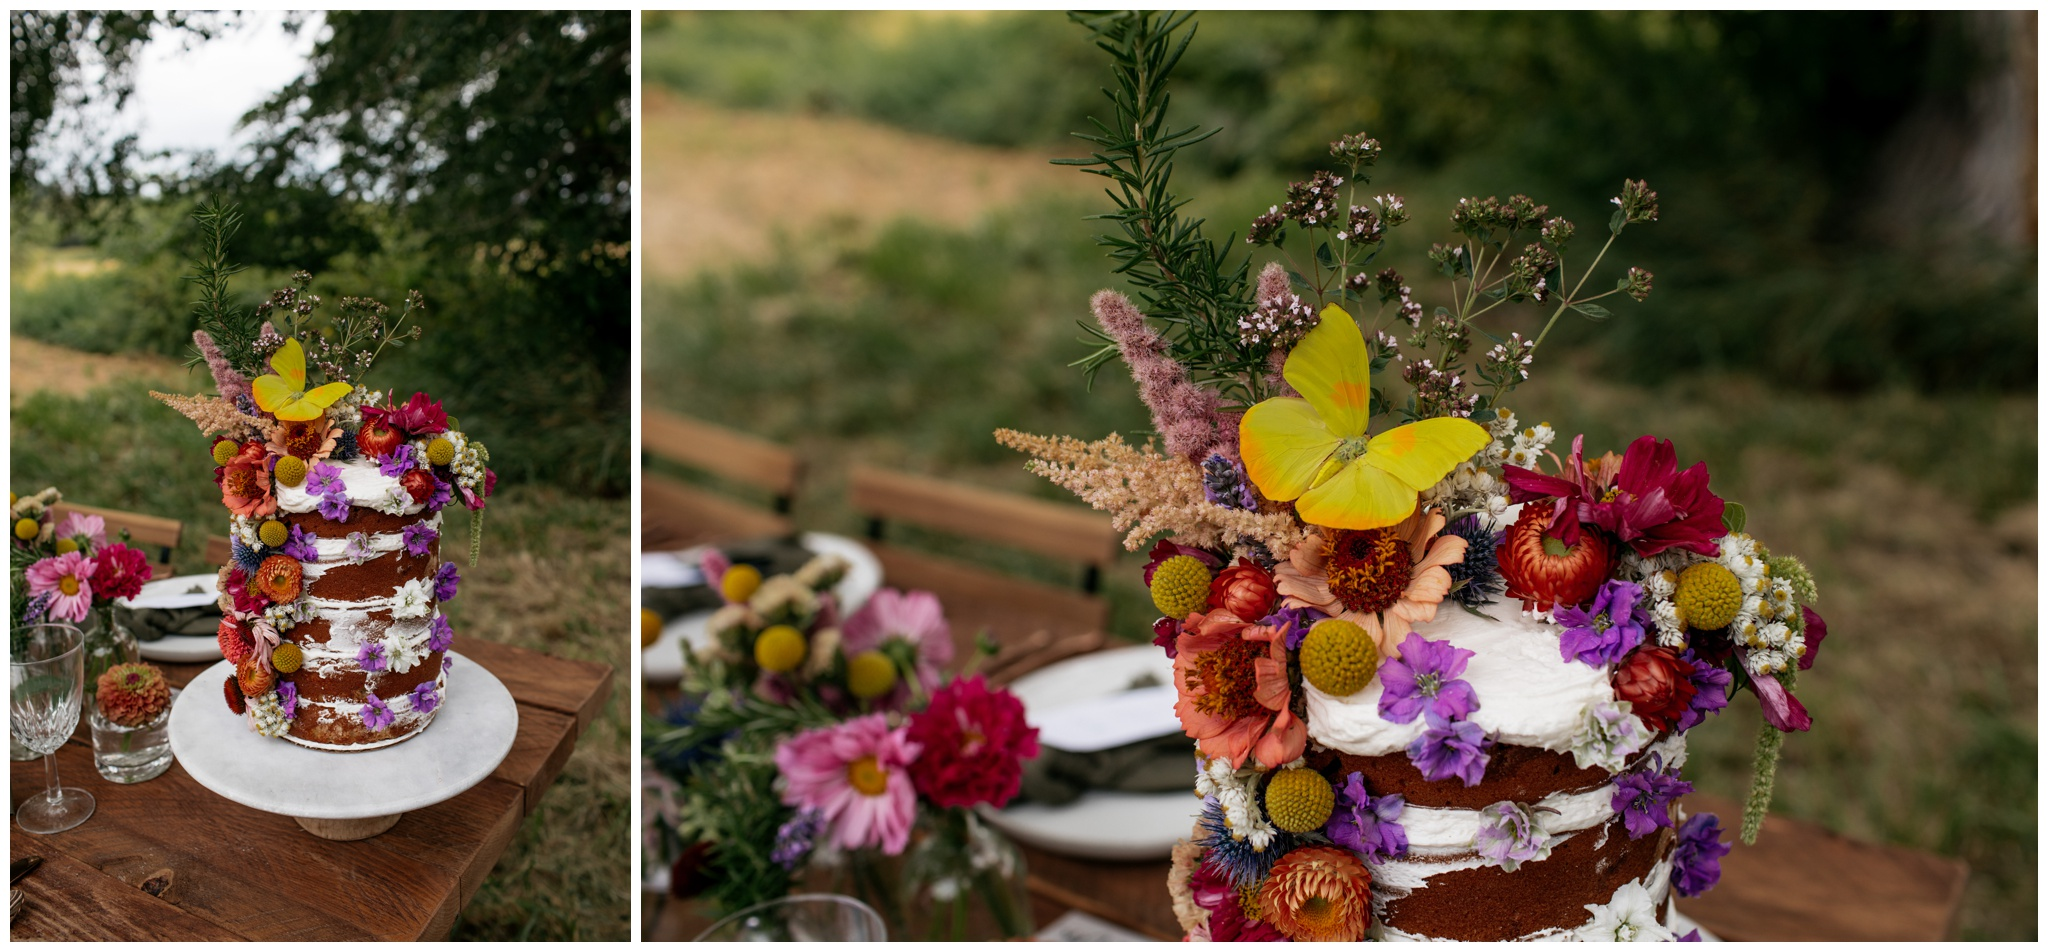 Intimate wildflower summer solstice wedding at Eberle Barn on Olympic Peninsula